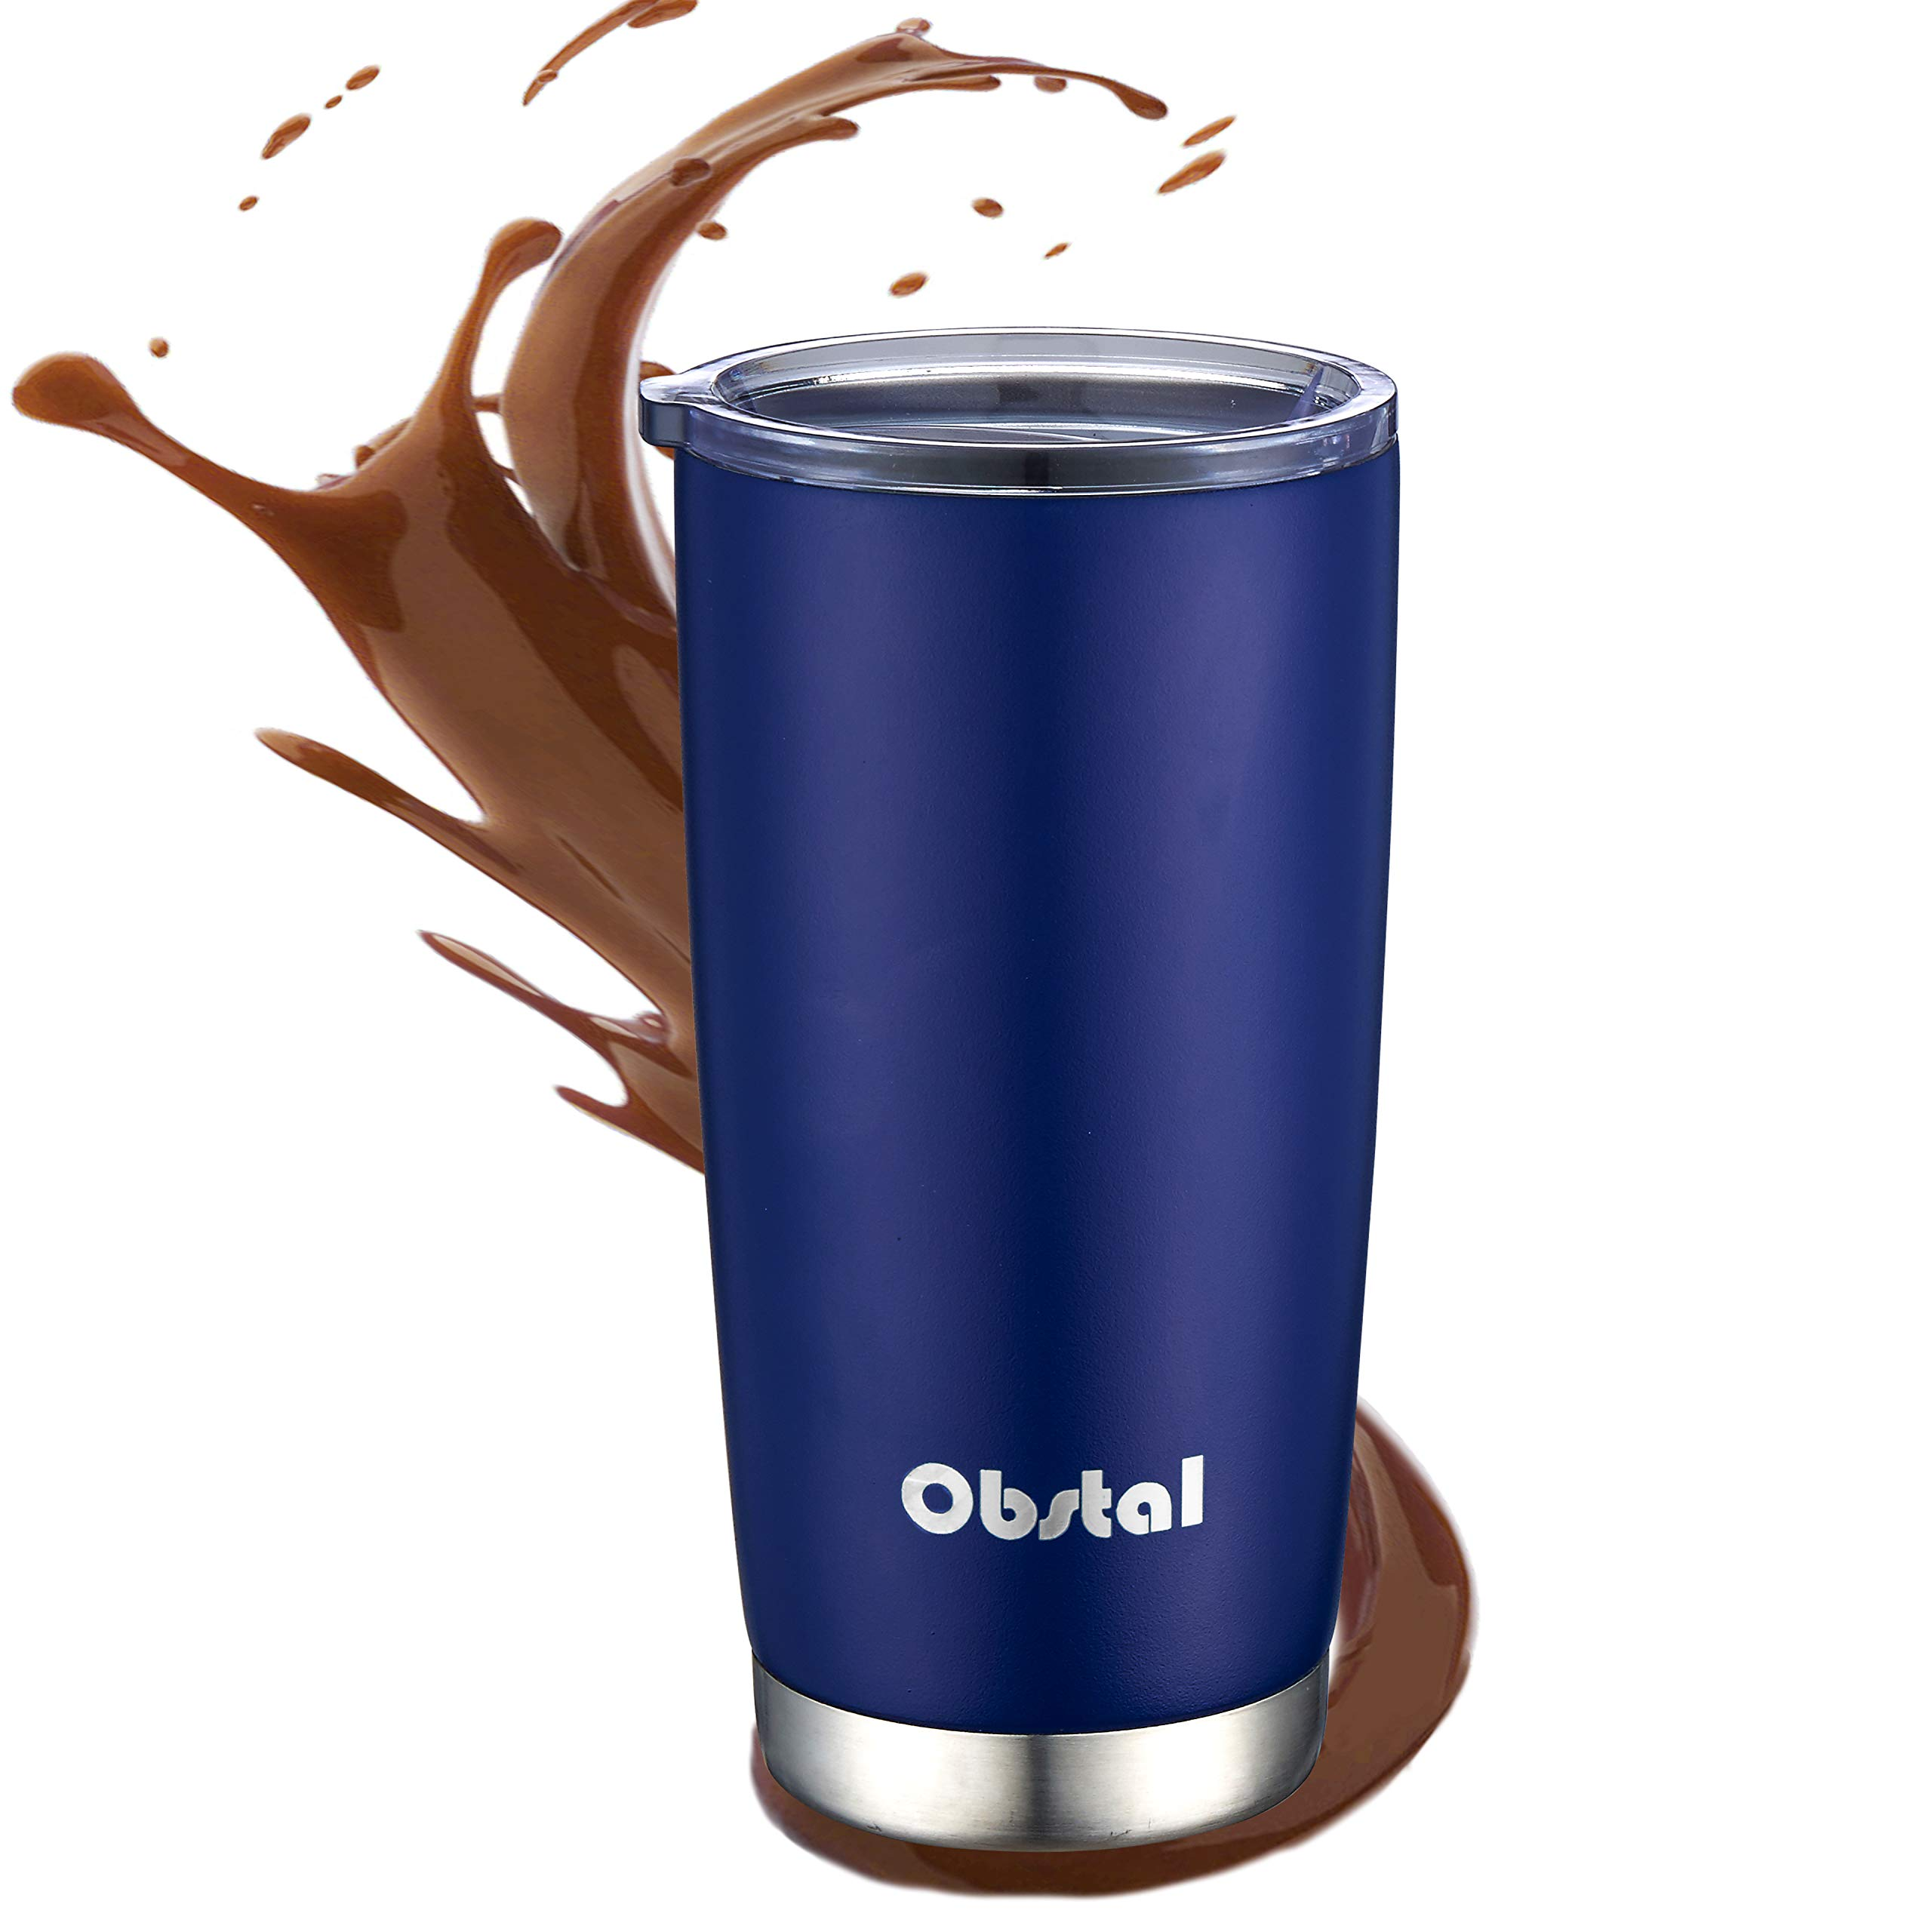 Obstal 20oz Insulated Coffee Tumbler Stainless Steel Double Wall Vacuum with Stainless Straw, 2 Clear Lids & Cleaning Brush for Office, Navy